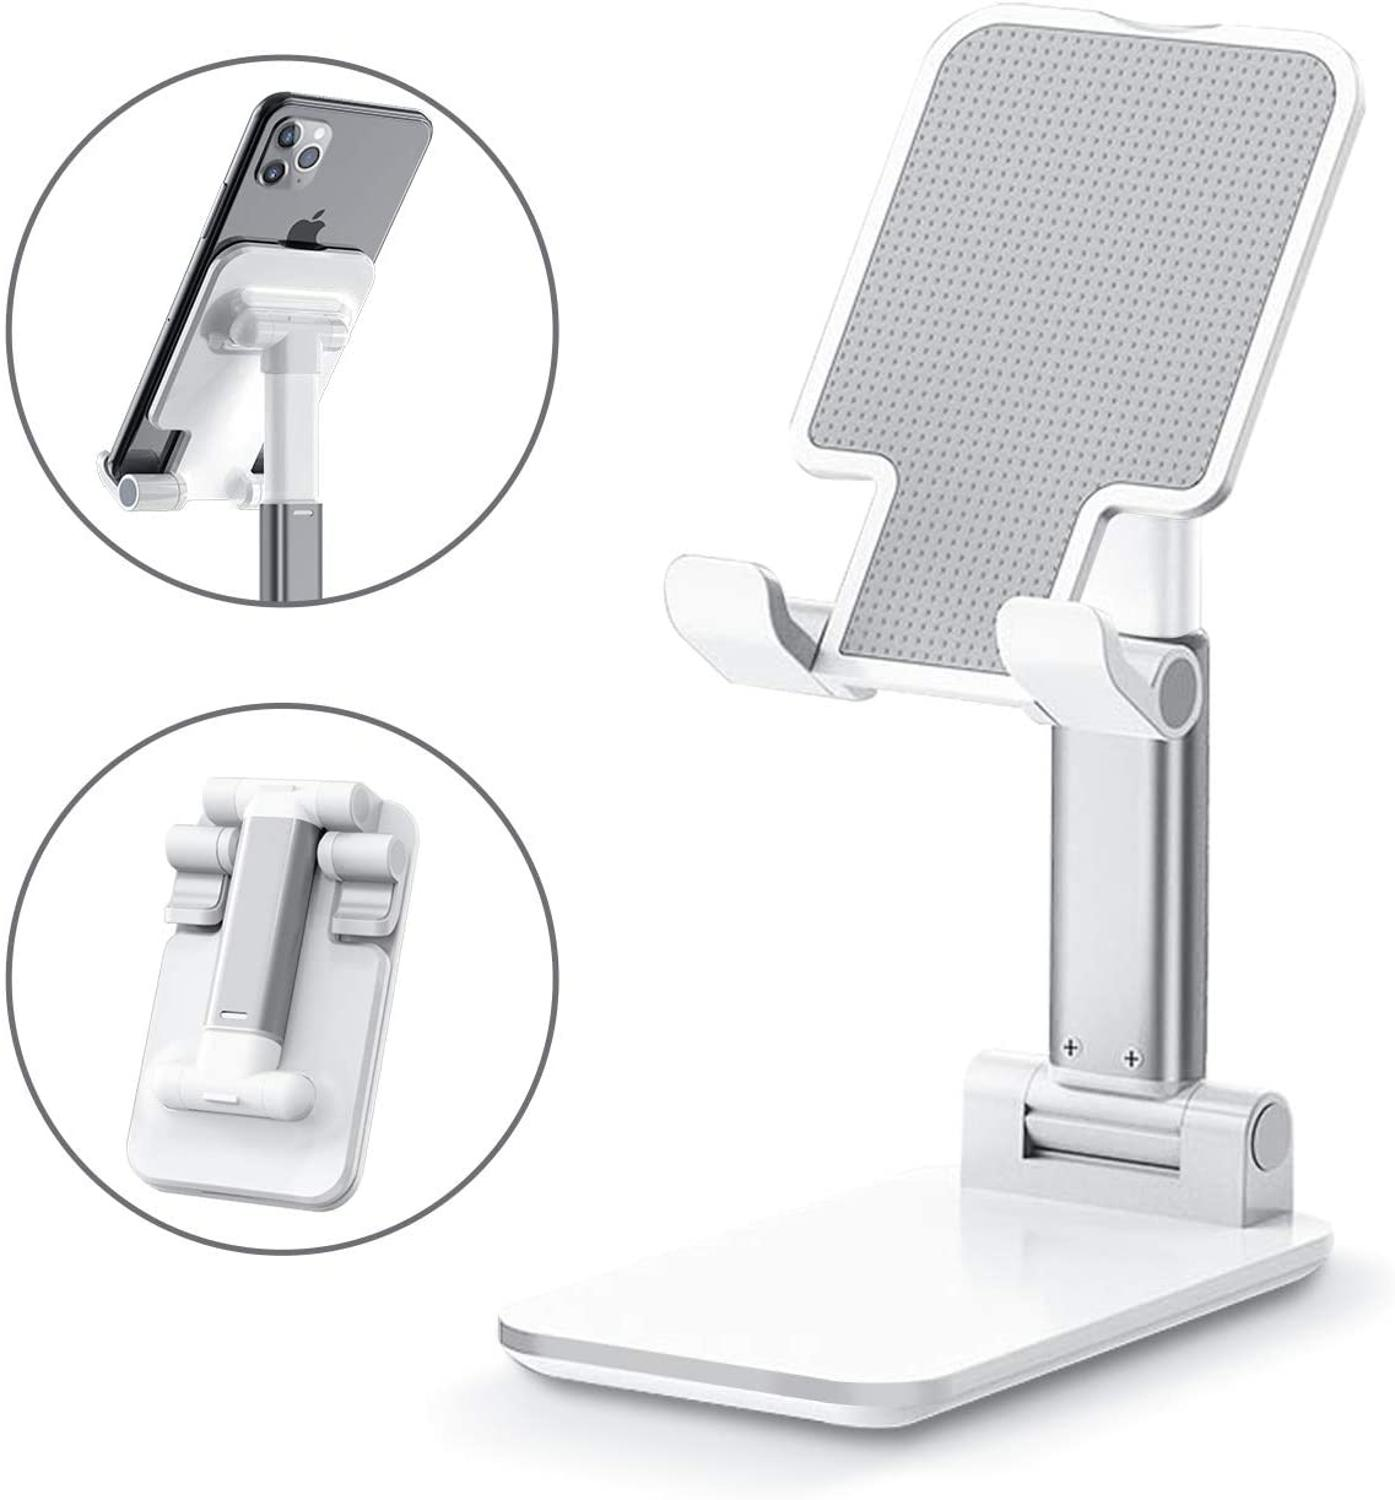 Adjustable Cell Phone Holder, Foldable Tablet Stand Mobile Phone Mount Compatible with All Smartphon